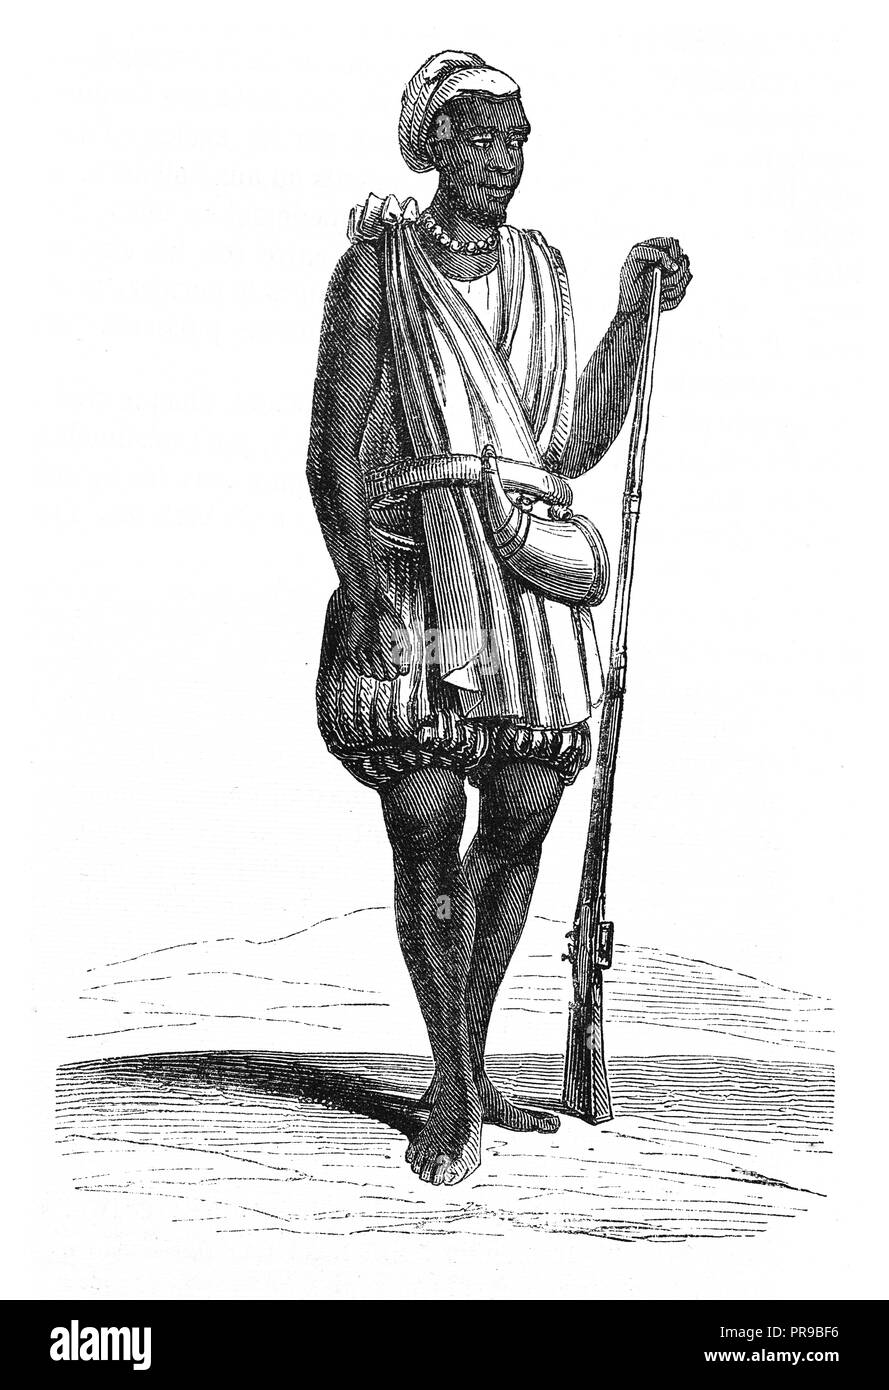 19th century illustration of a traditional costume of a male Yolof, Senegambia. Drawing by Nousveaux. Original artwork published in Le magasin Pittore - Stock Image